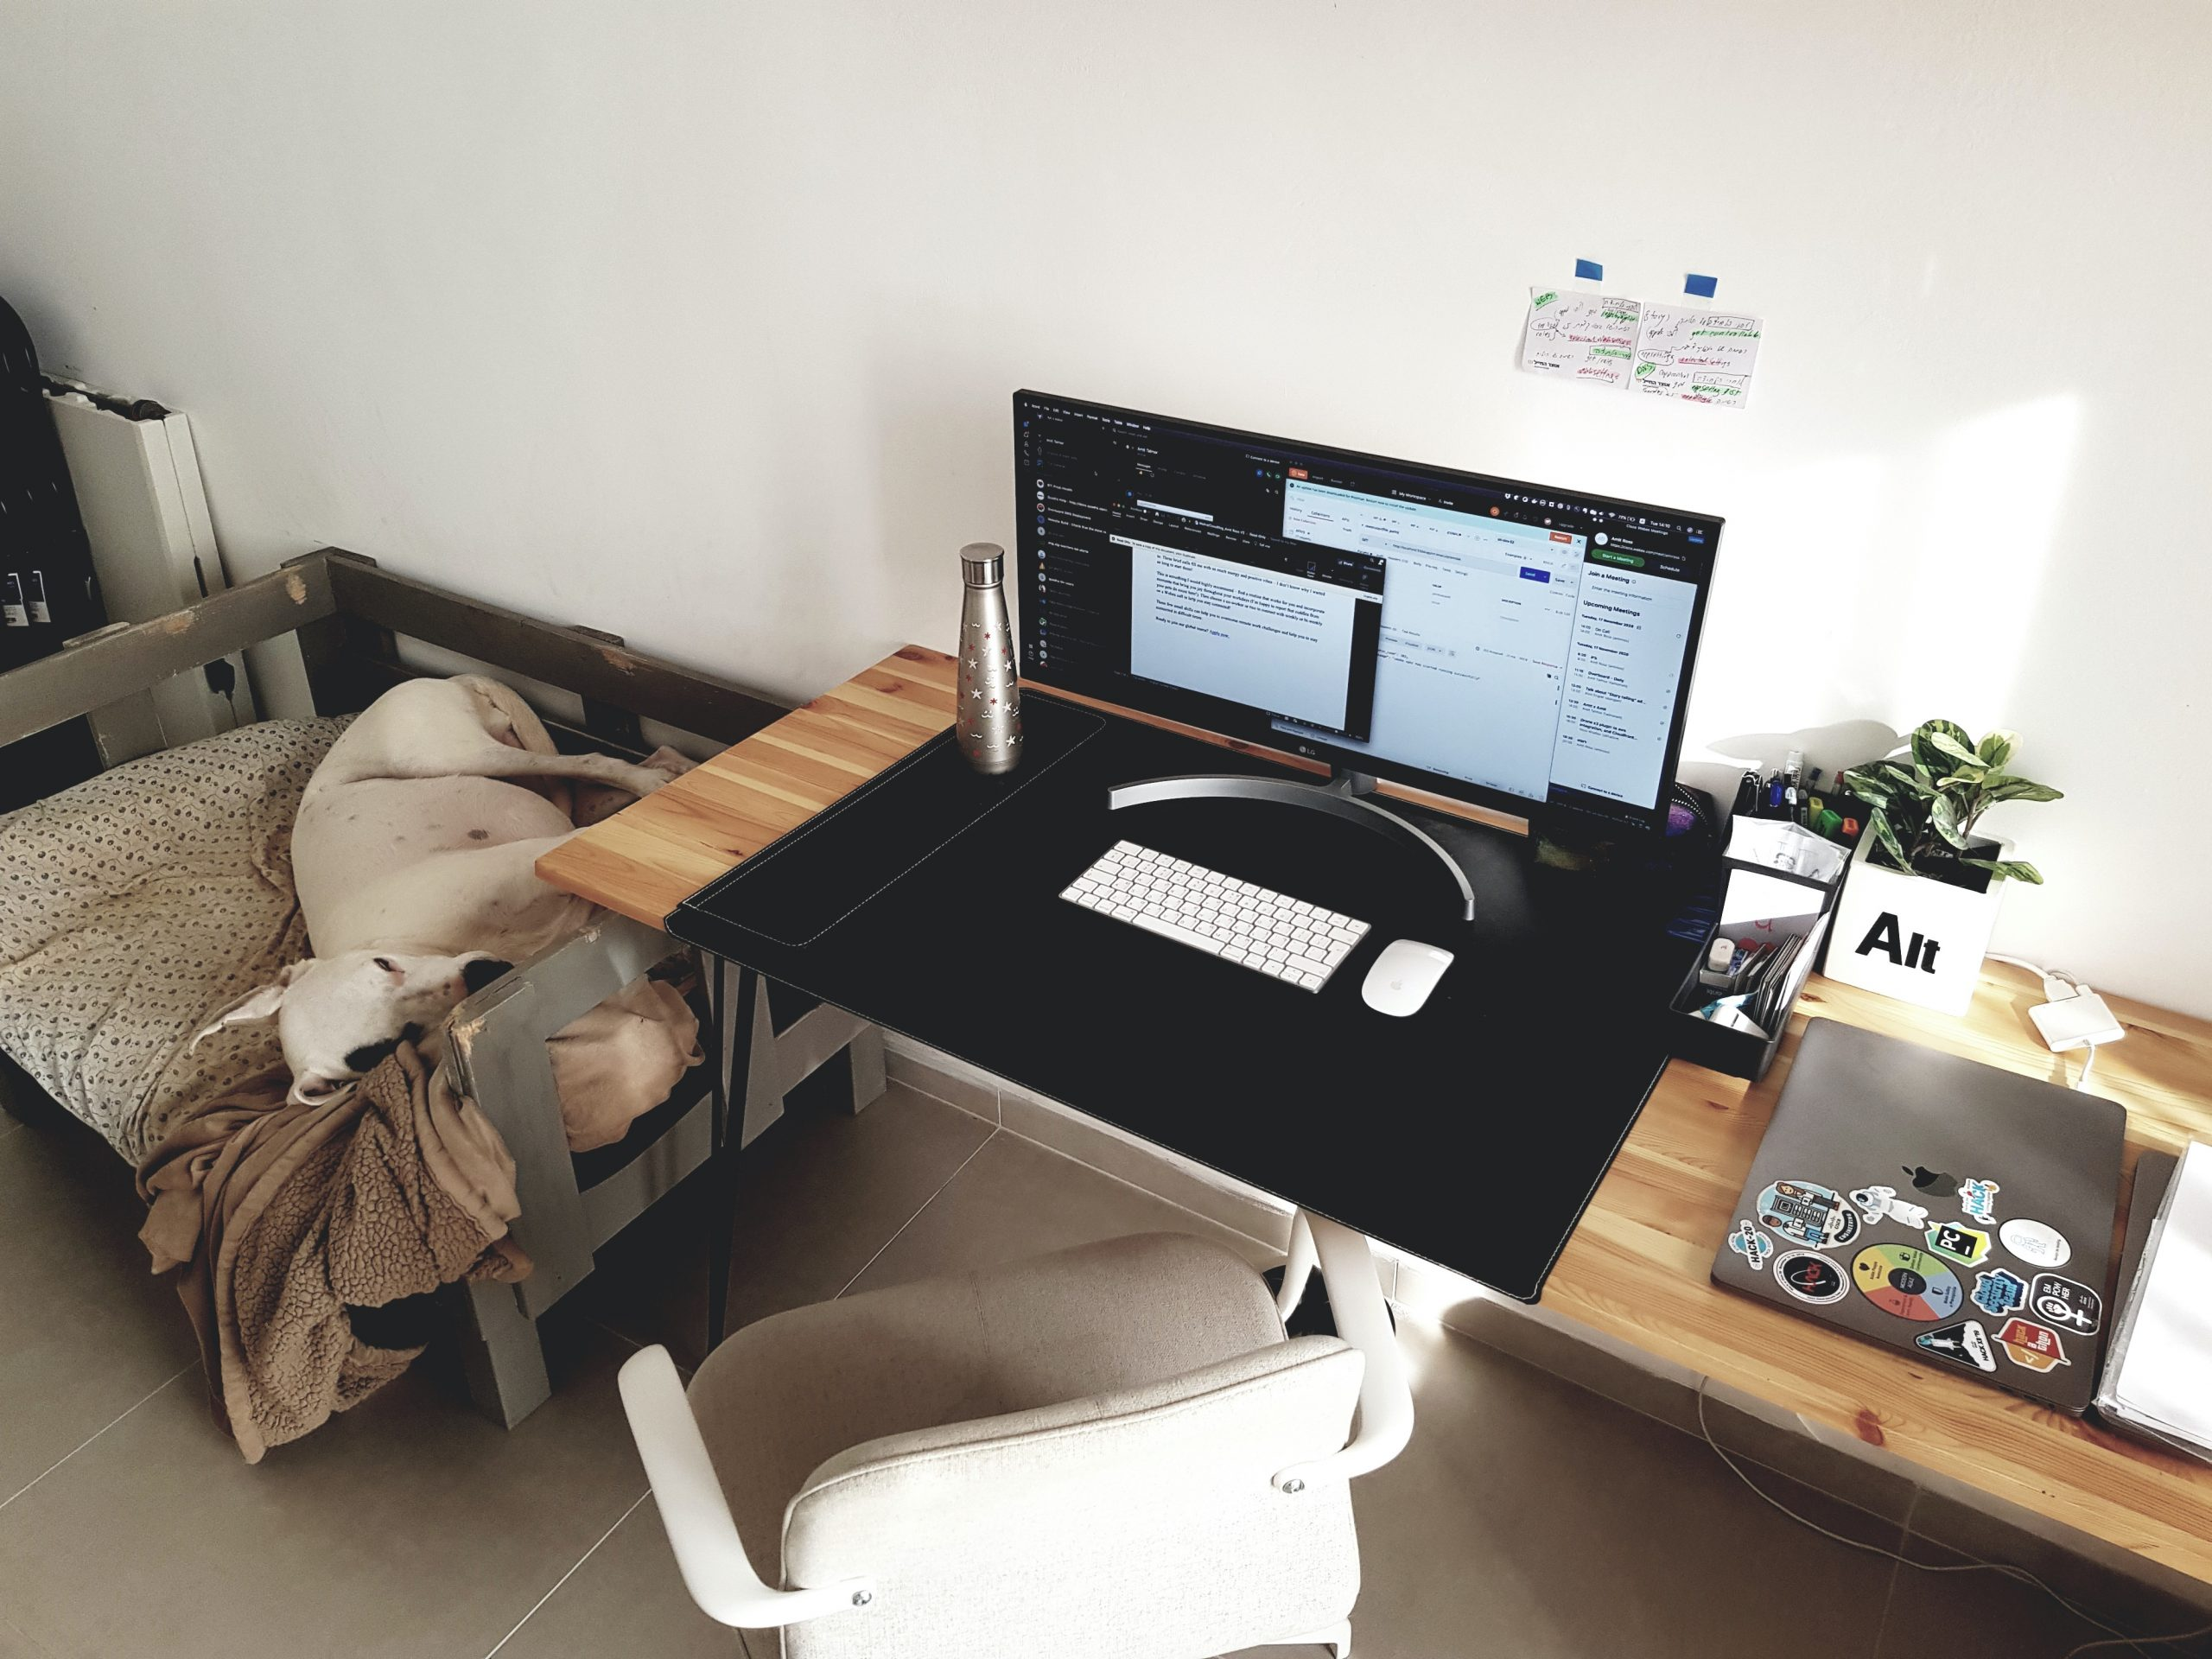 Overcoming Problems of Remote Work